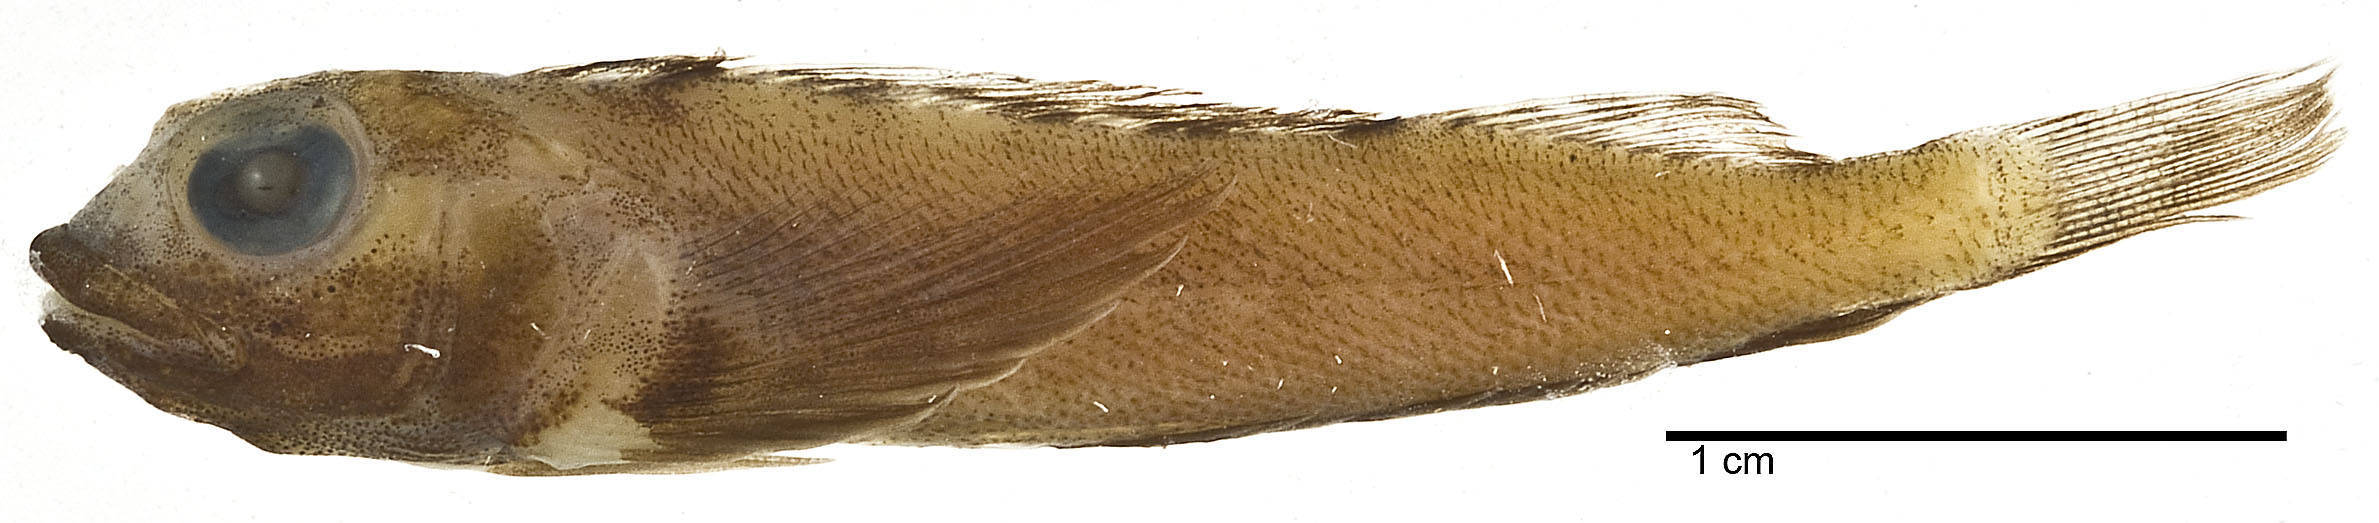 Image of Scarf triplefin